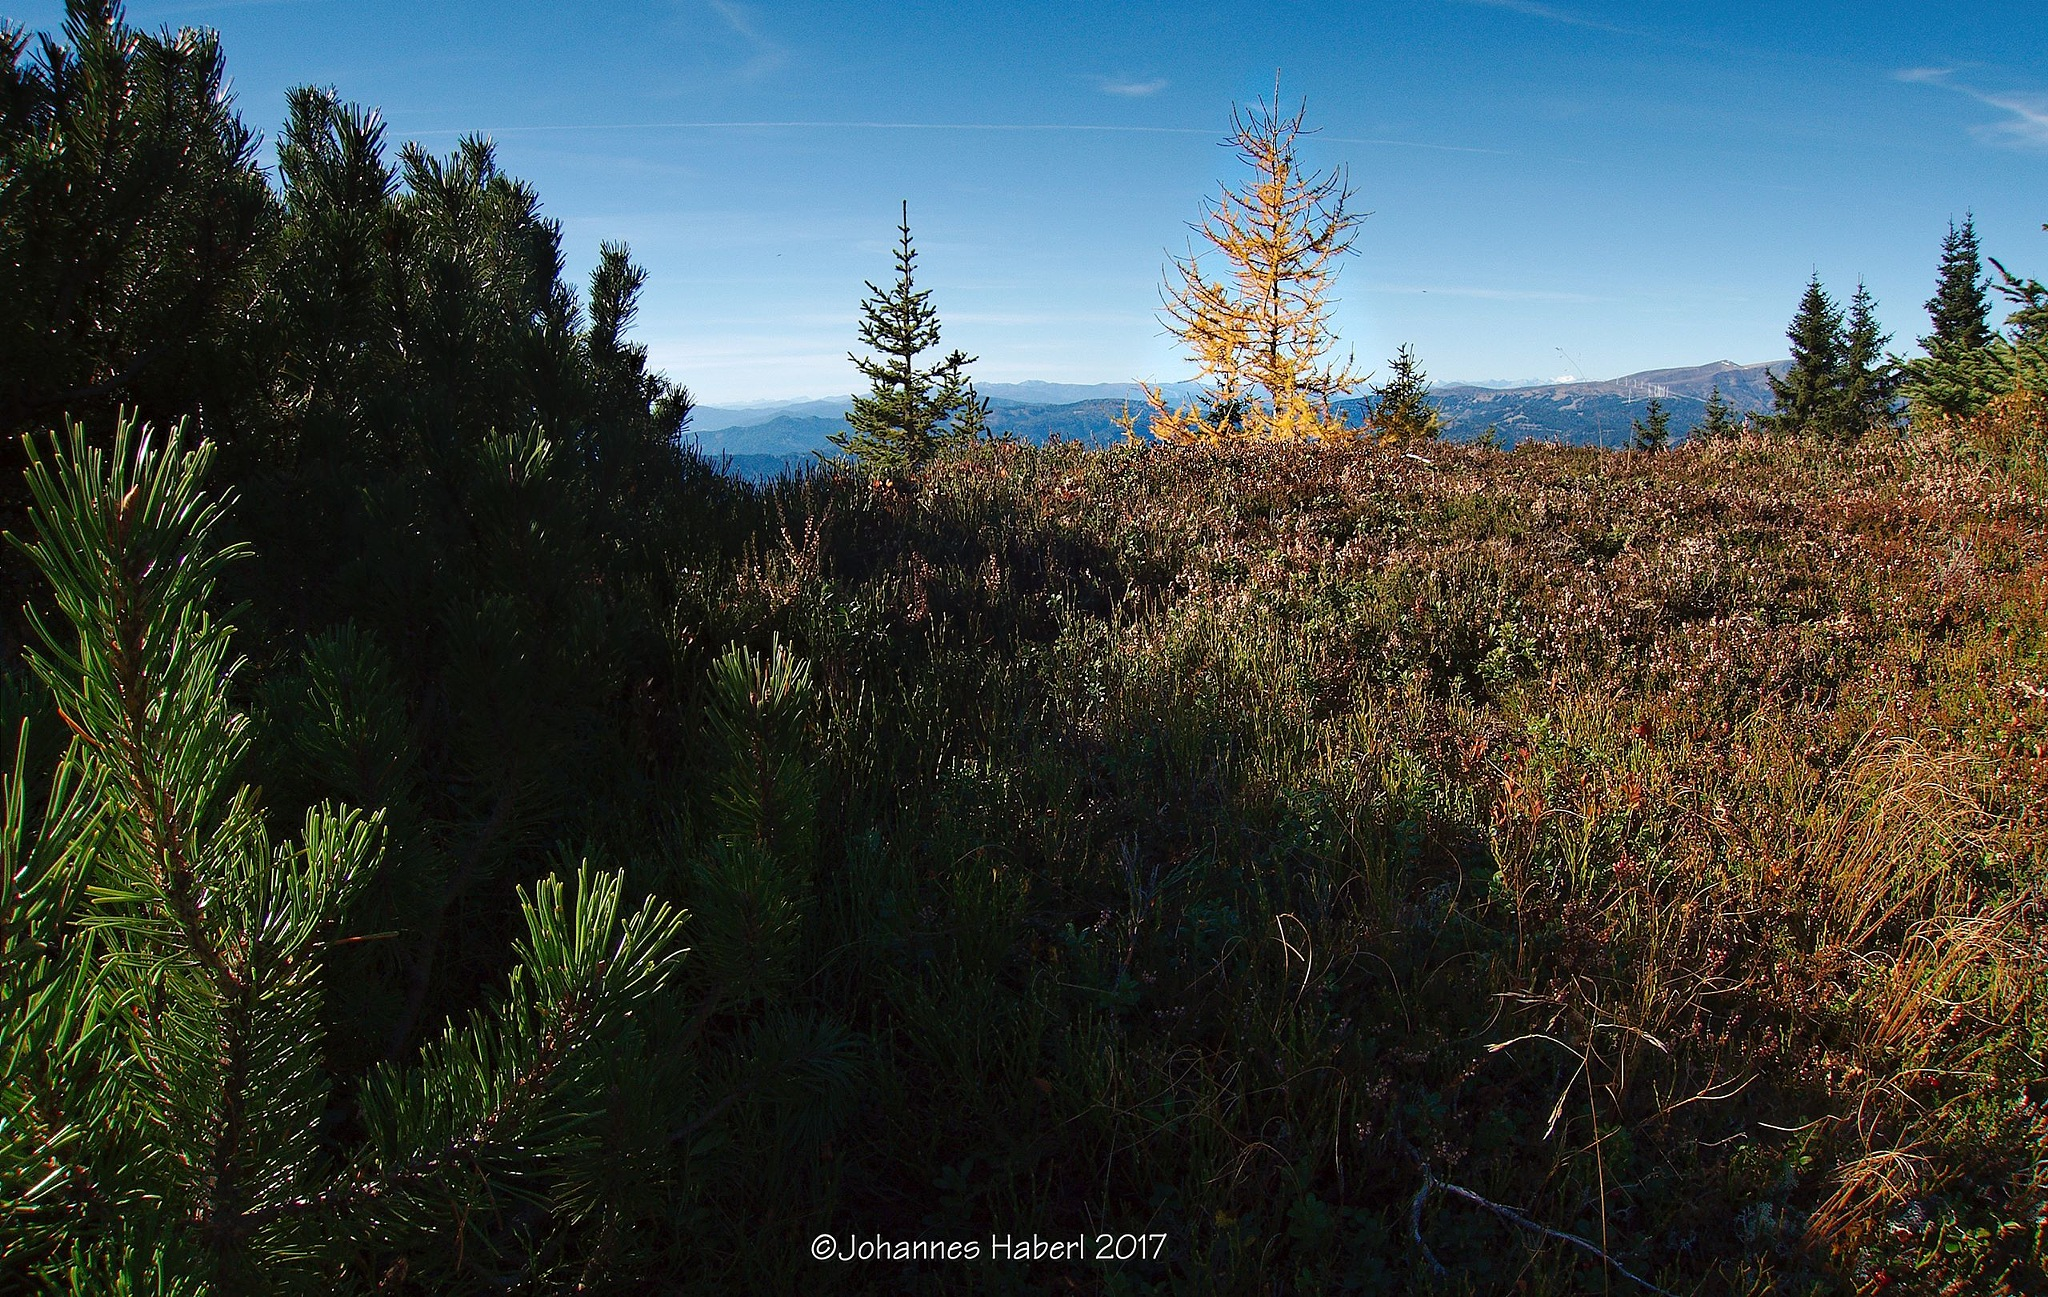 mountain pine & larch by Johannes Haberl